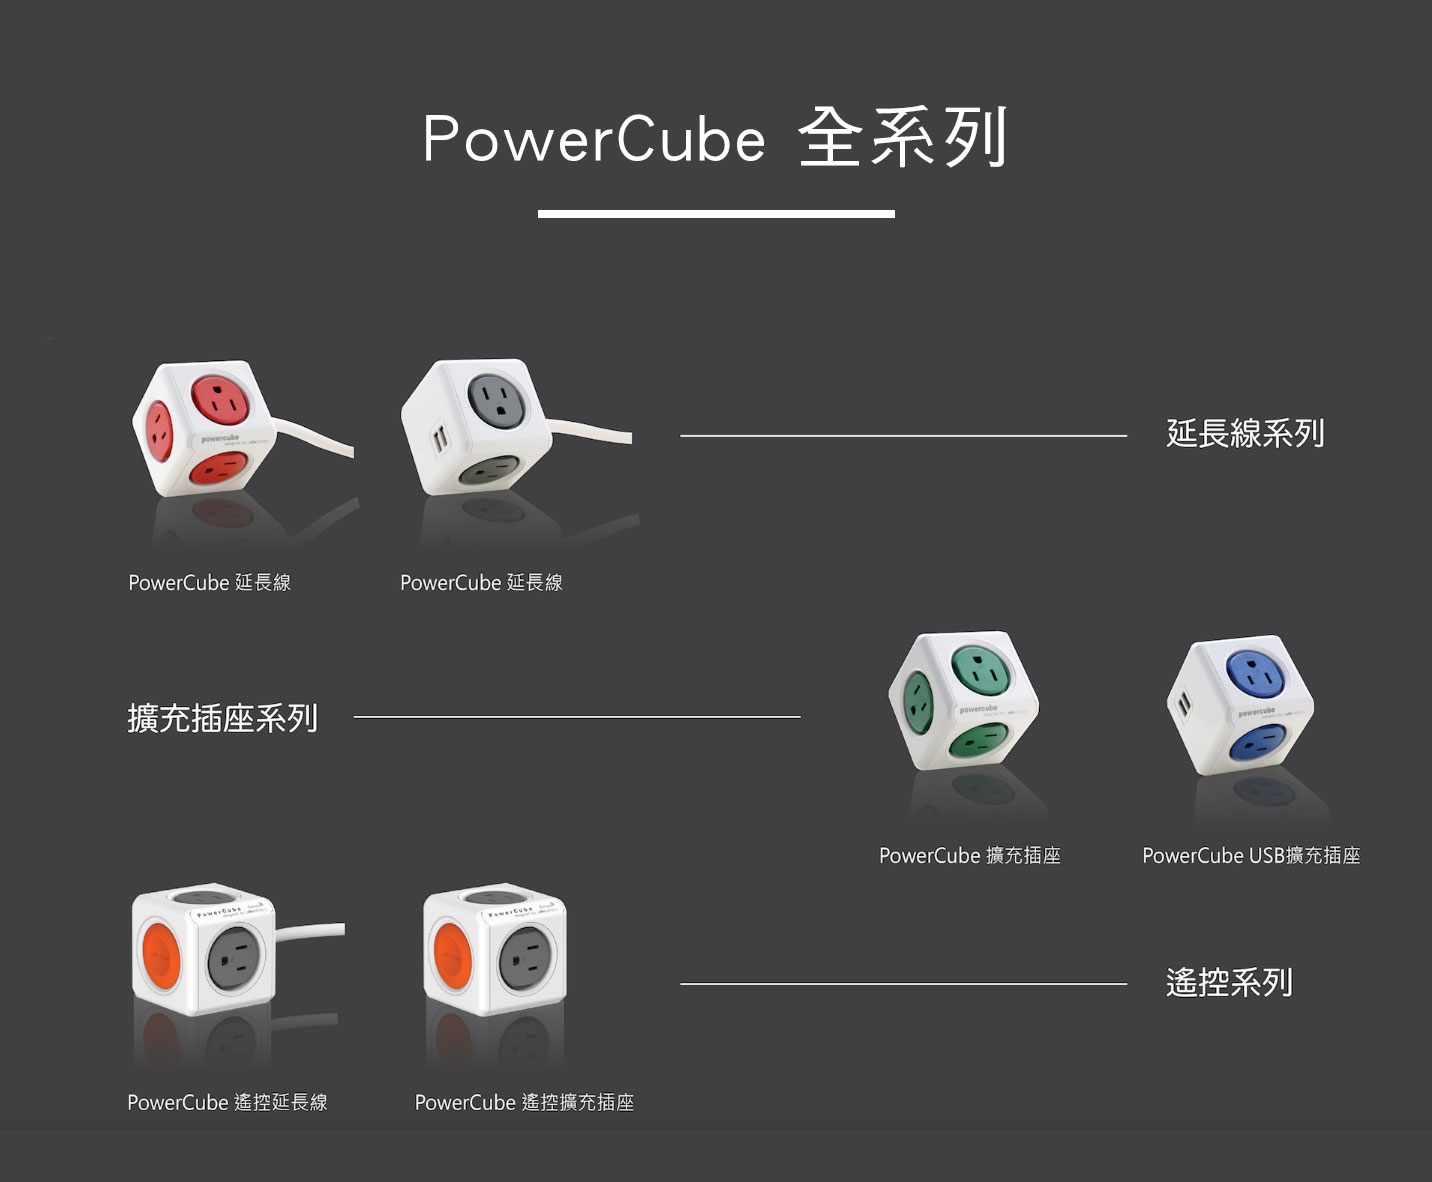 荷蘭 PowerCube 全系列